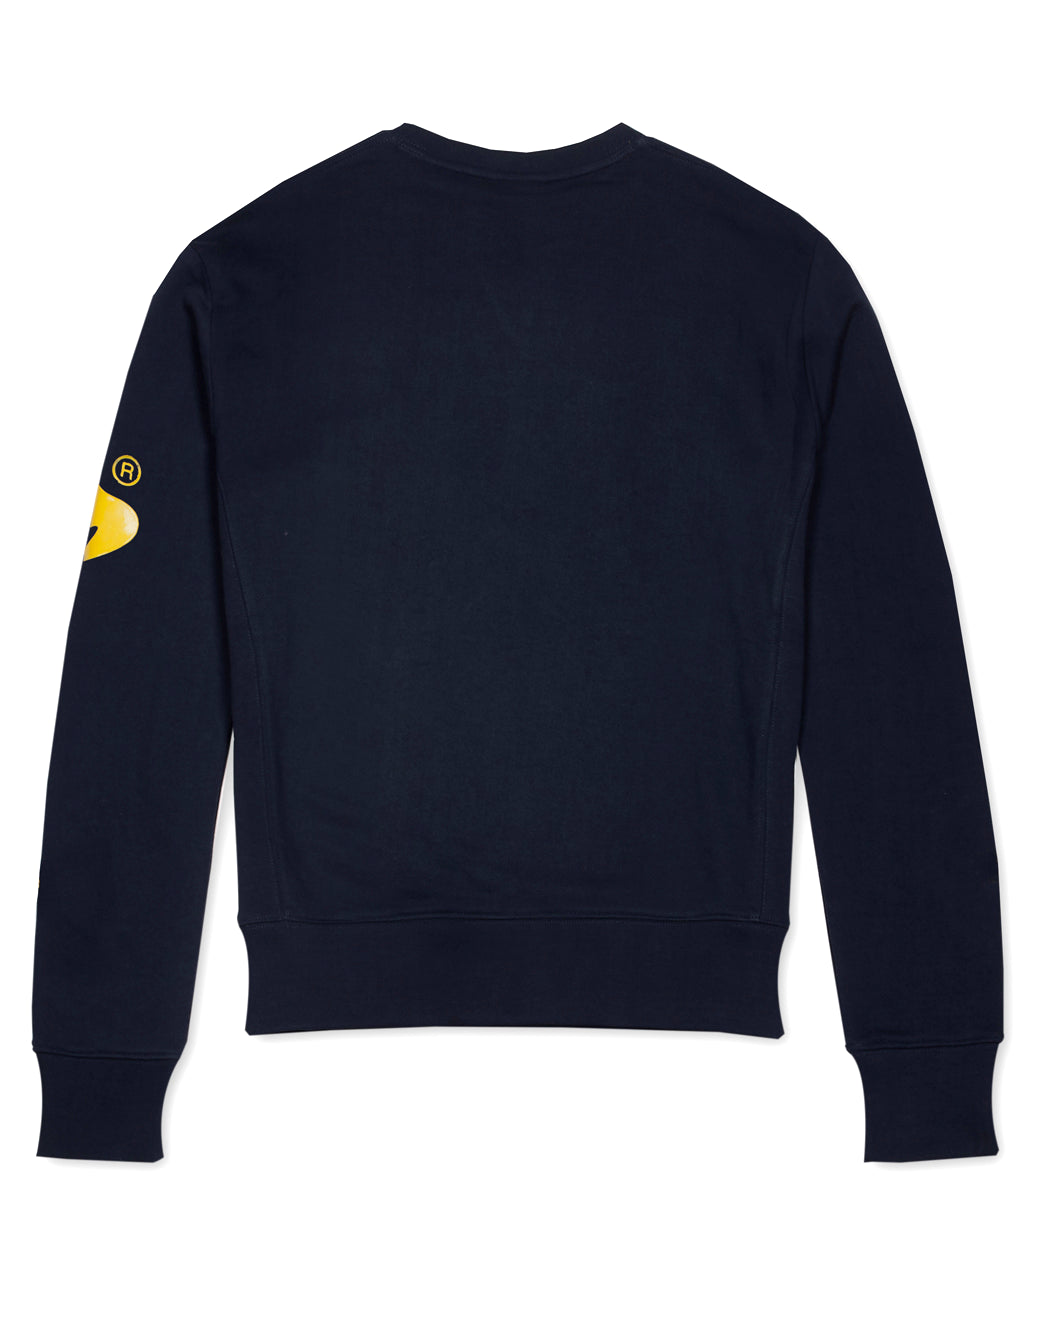 Money Clothing crew neck sweatshirt in navy